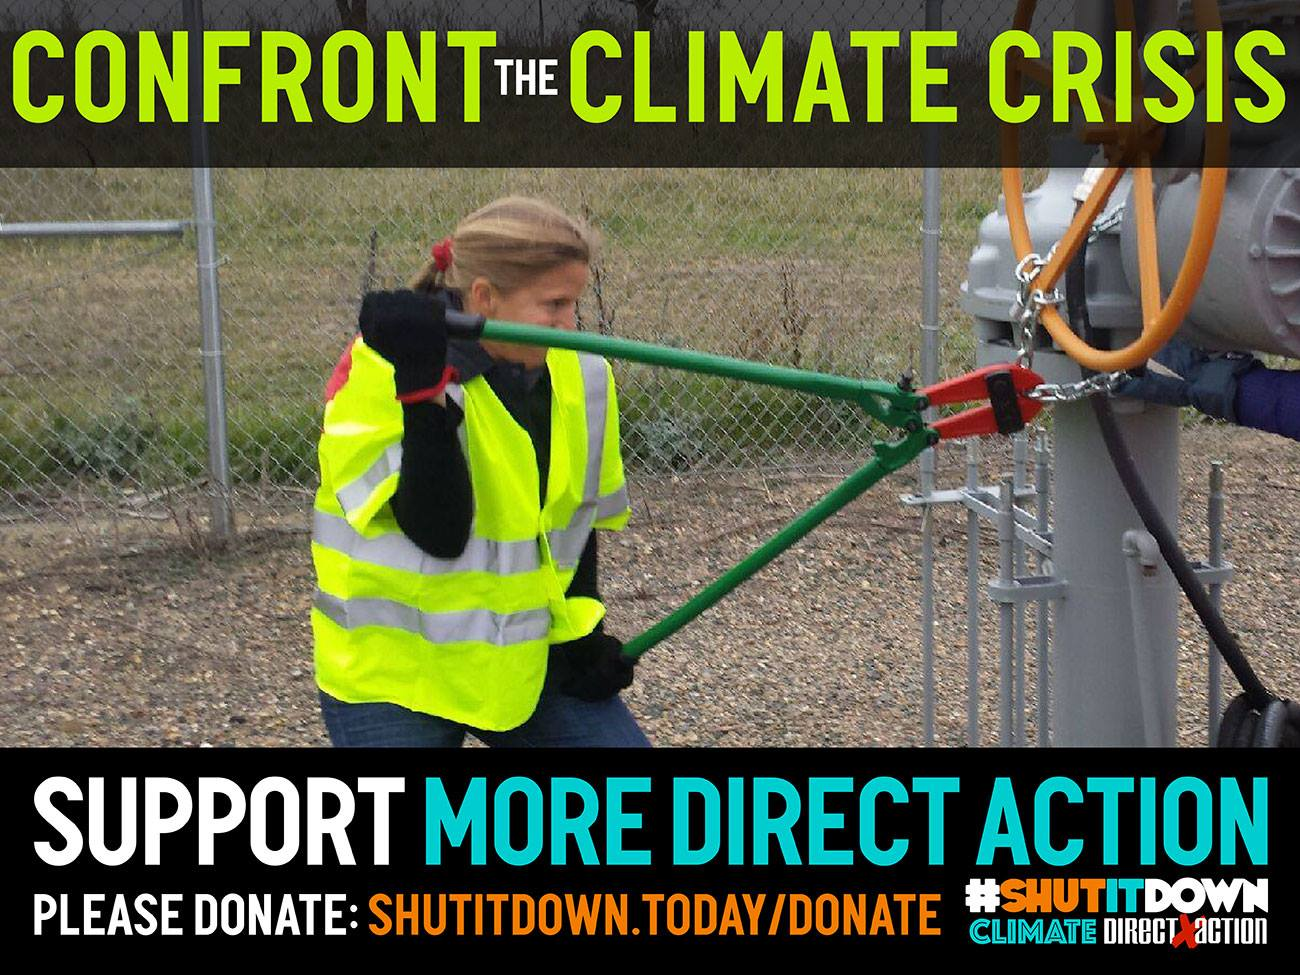 Support_More_Direct_Action_Donate.jpg